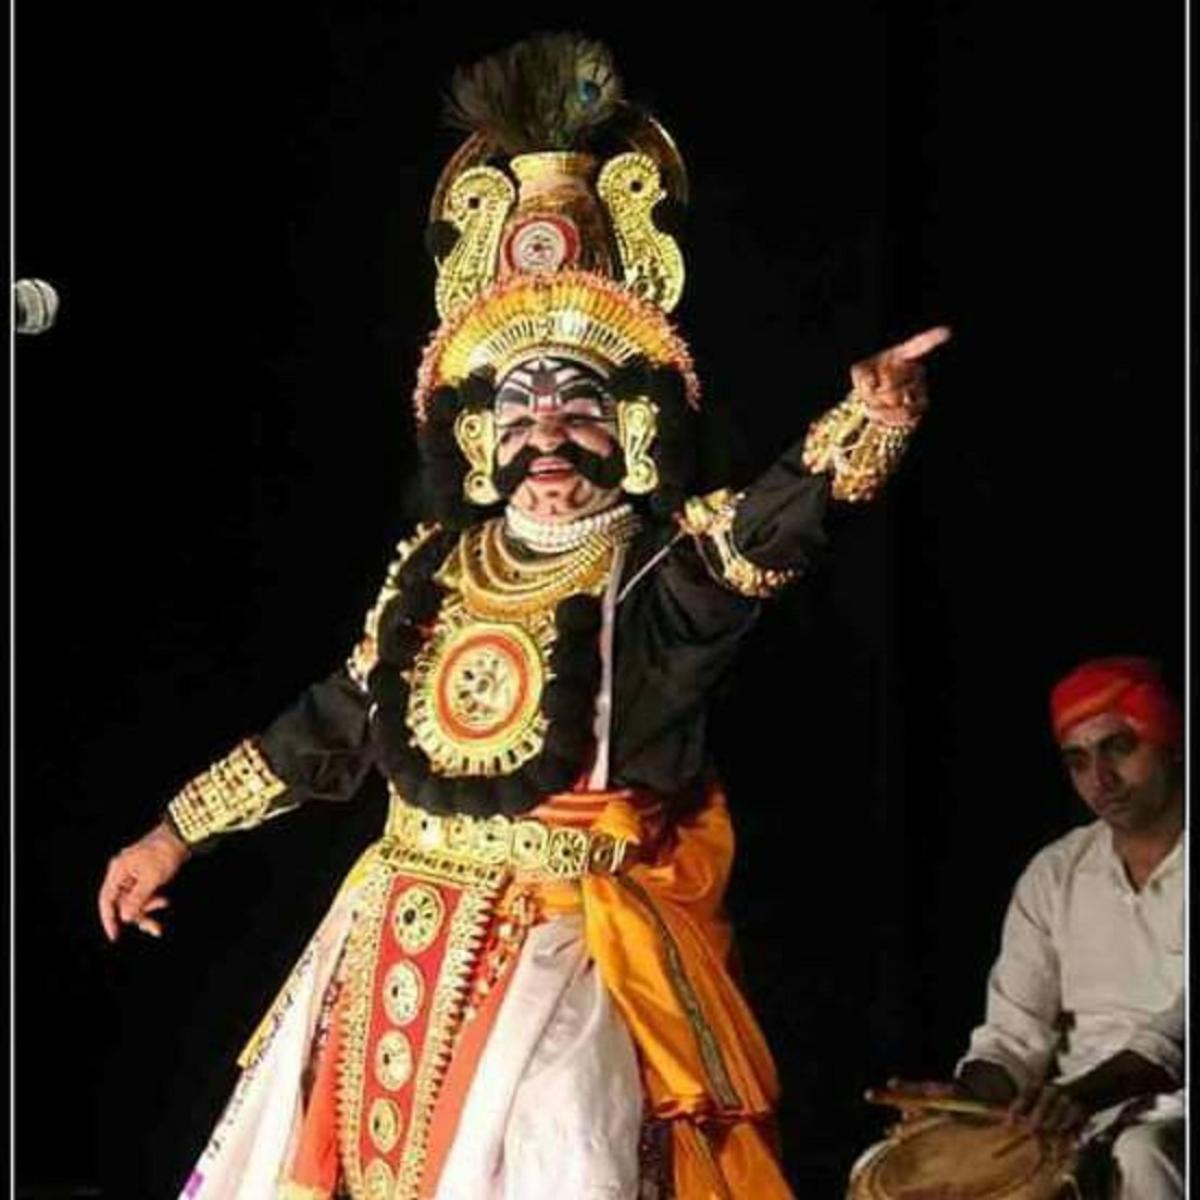 A file photo of a Yakshagana artiste in performance.